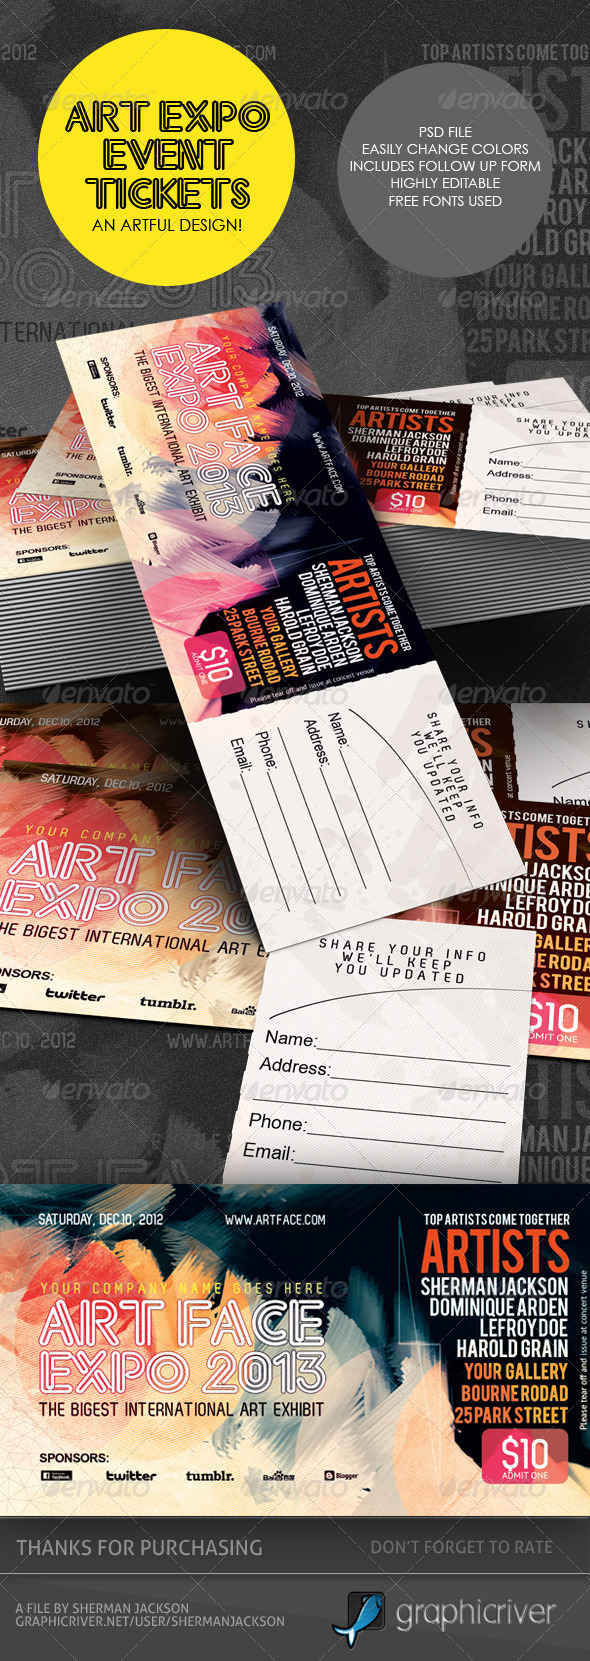 Art Expo Art Show Event Tickets & Passes Template - Miscellaneous Print Templates